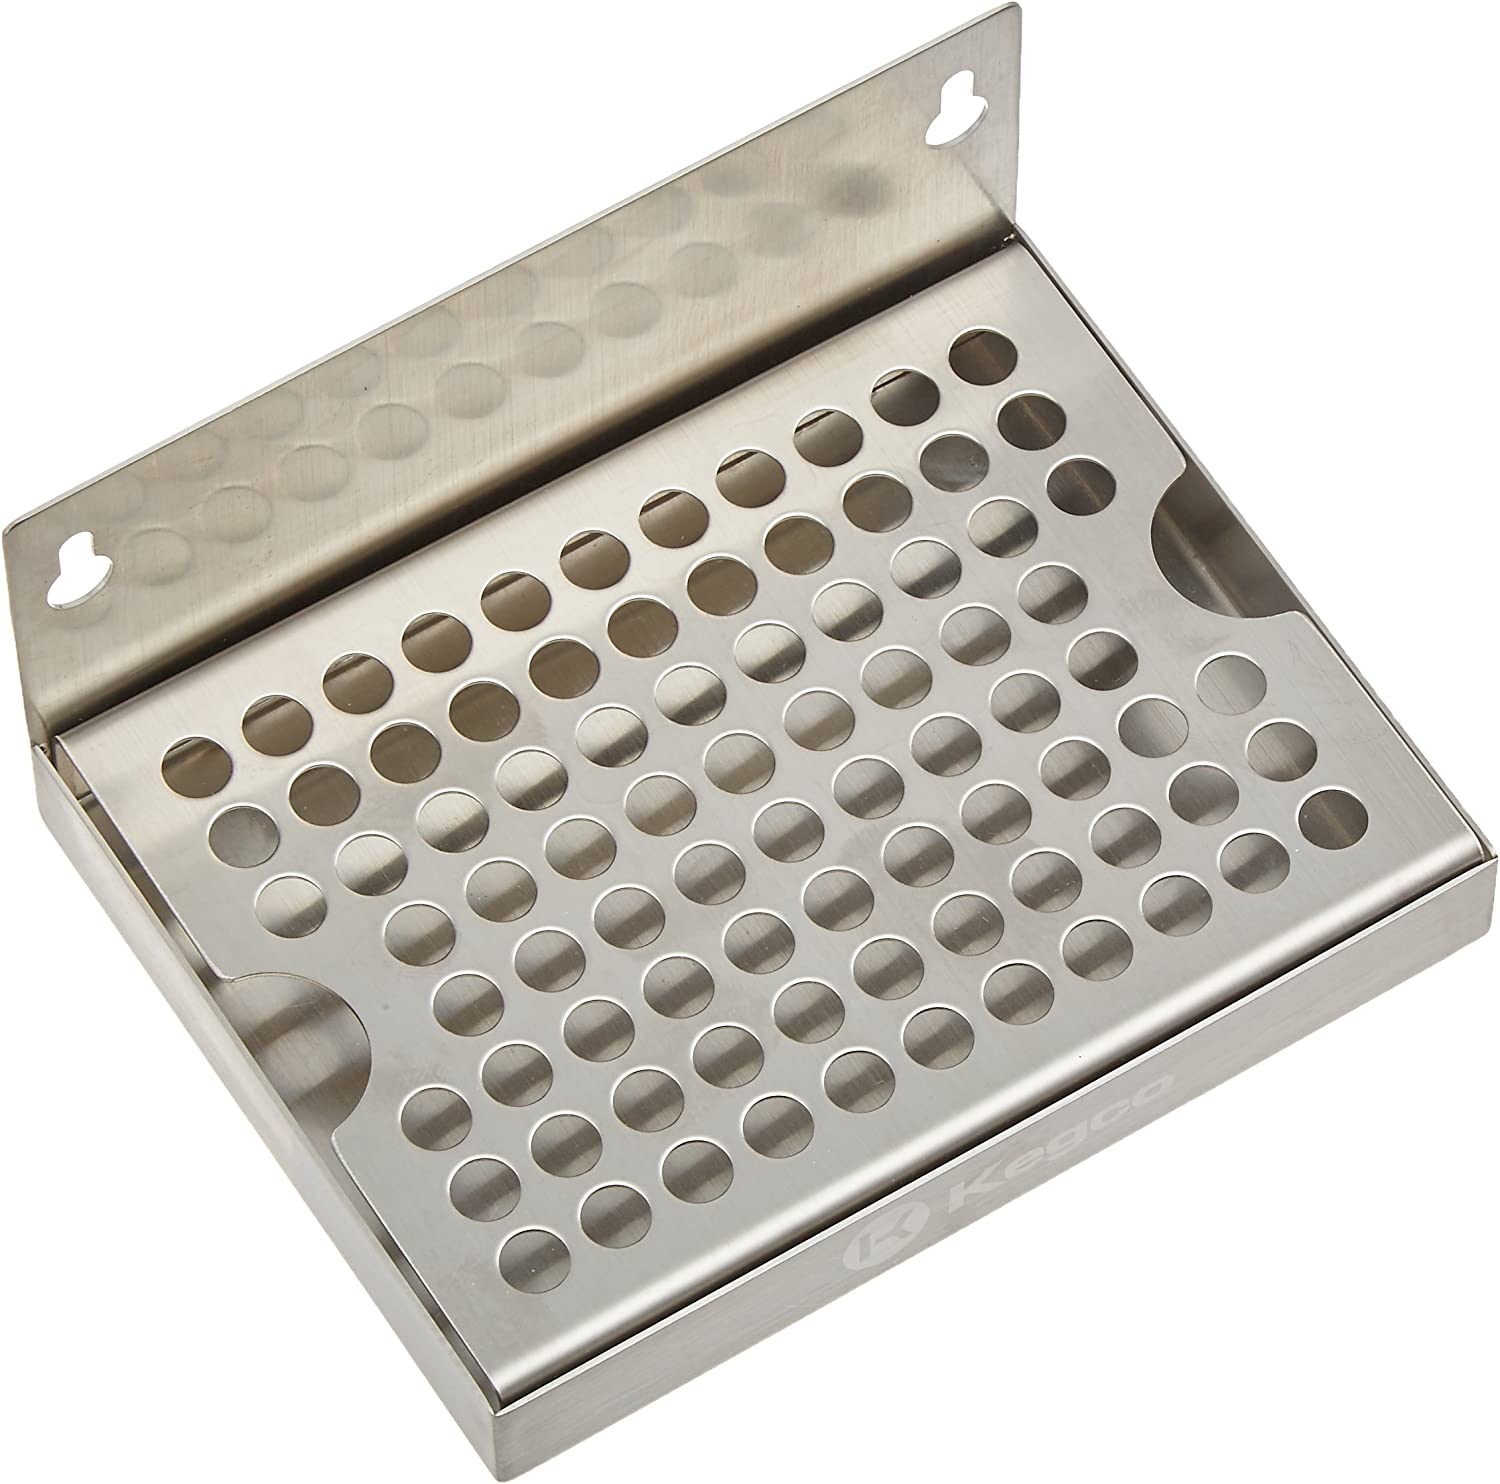 Kegco KC DP-64 Drip Tray, Stainless Steel